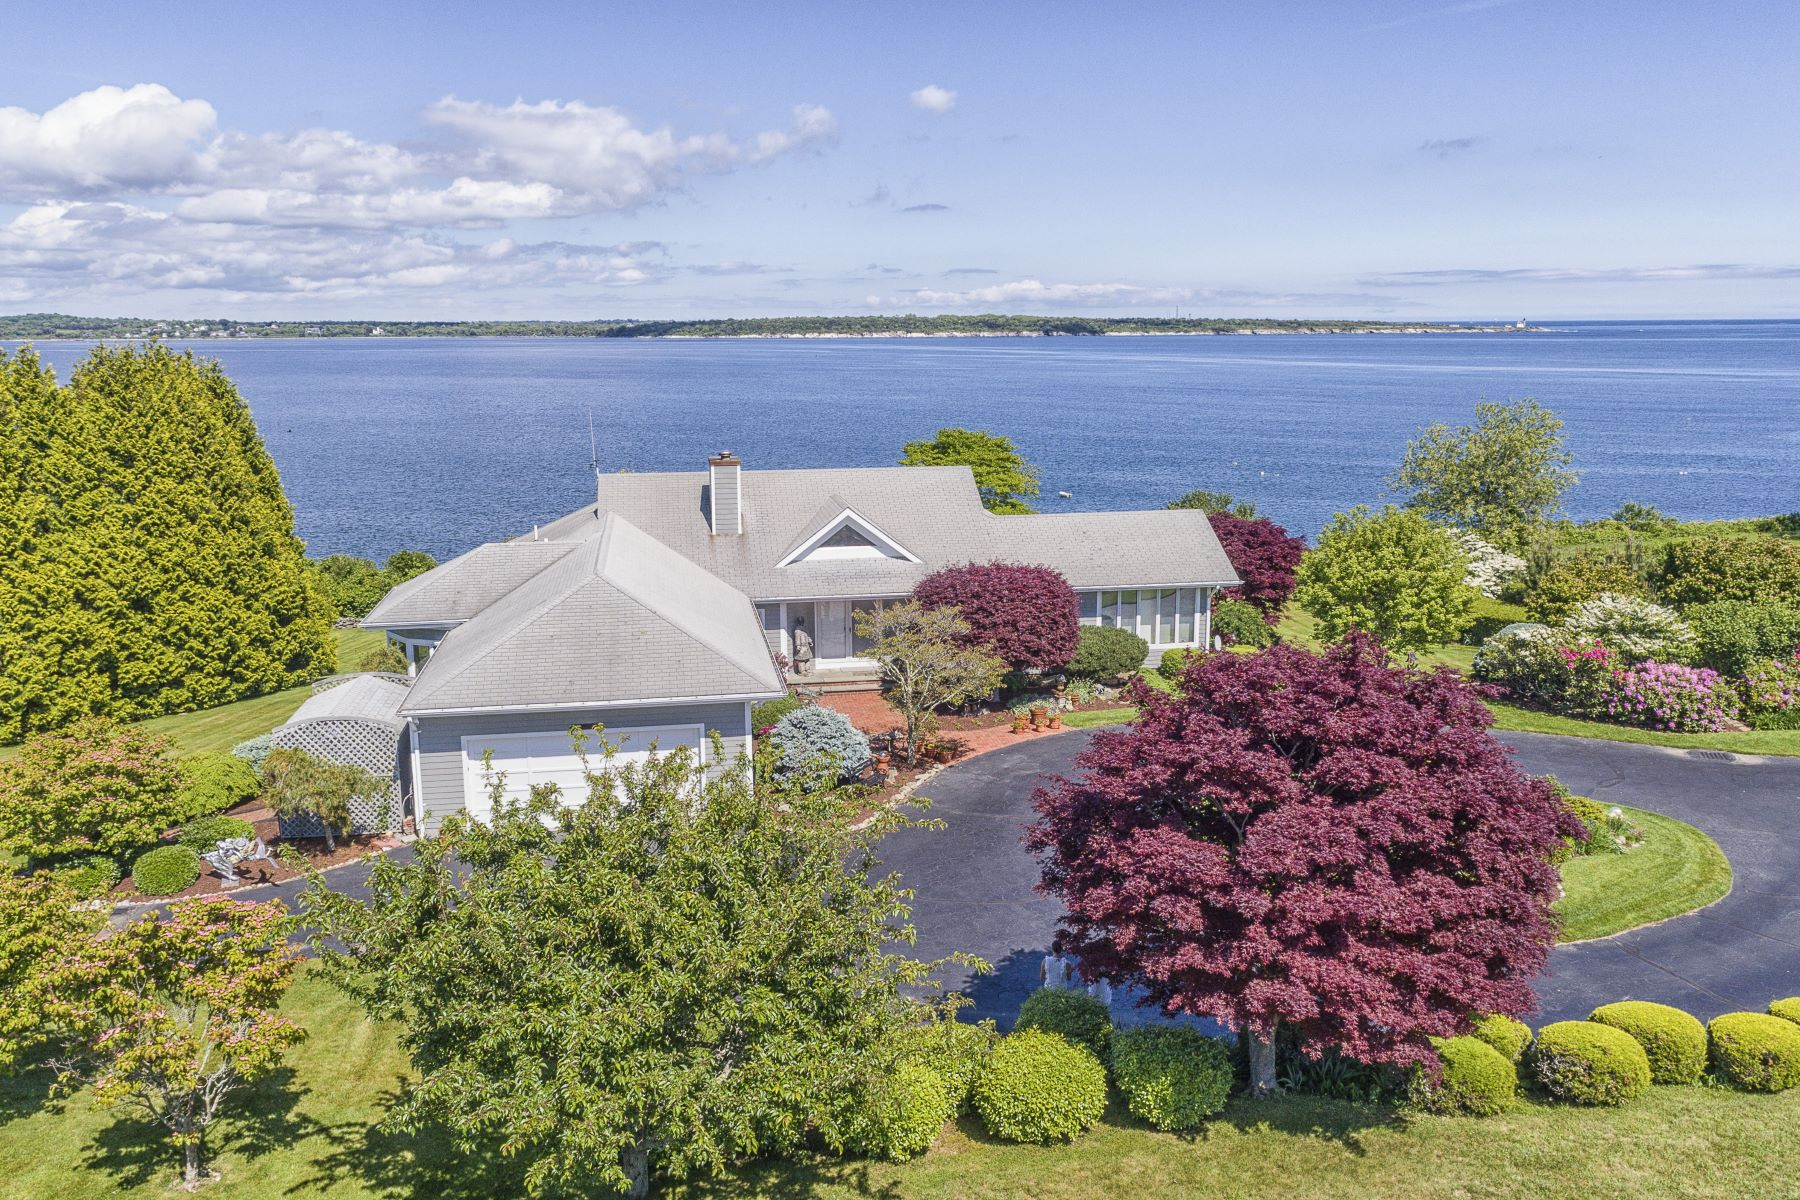 Single Family Homes for Sale at 60 North Cliff Drive, Narragansett, RI Narragansett, Rhode Island 02882 United States